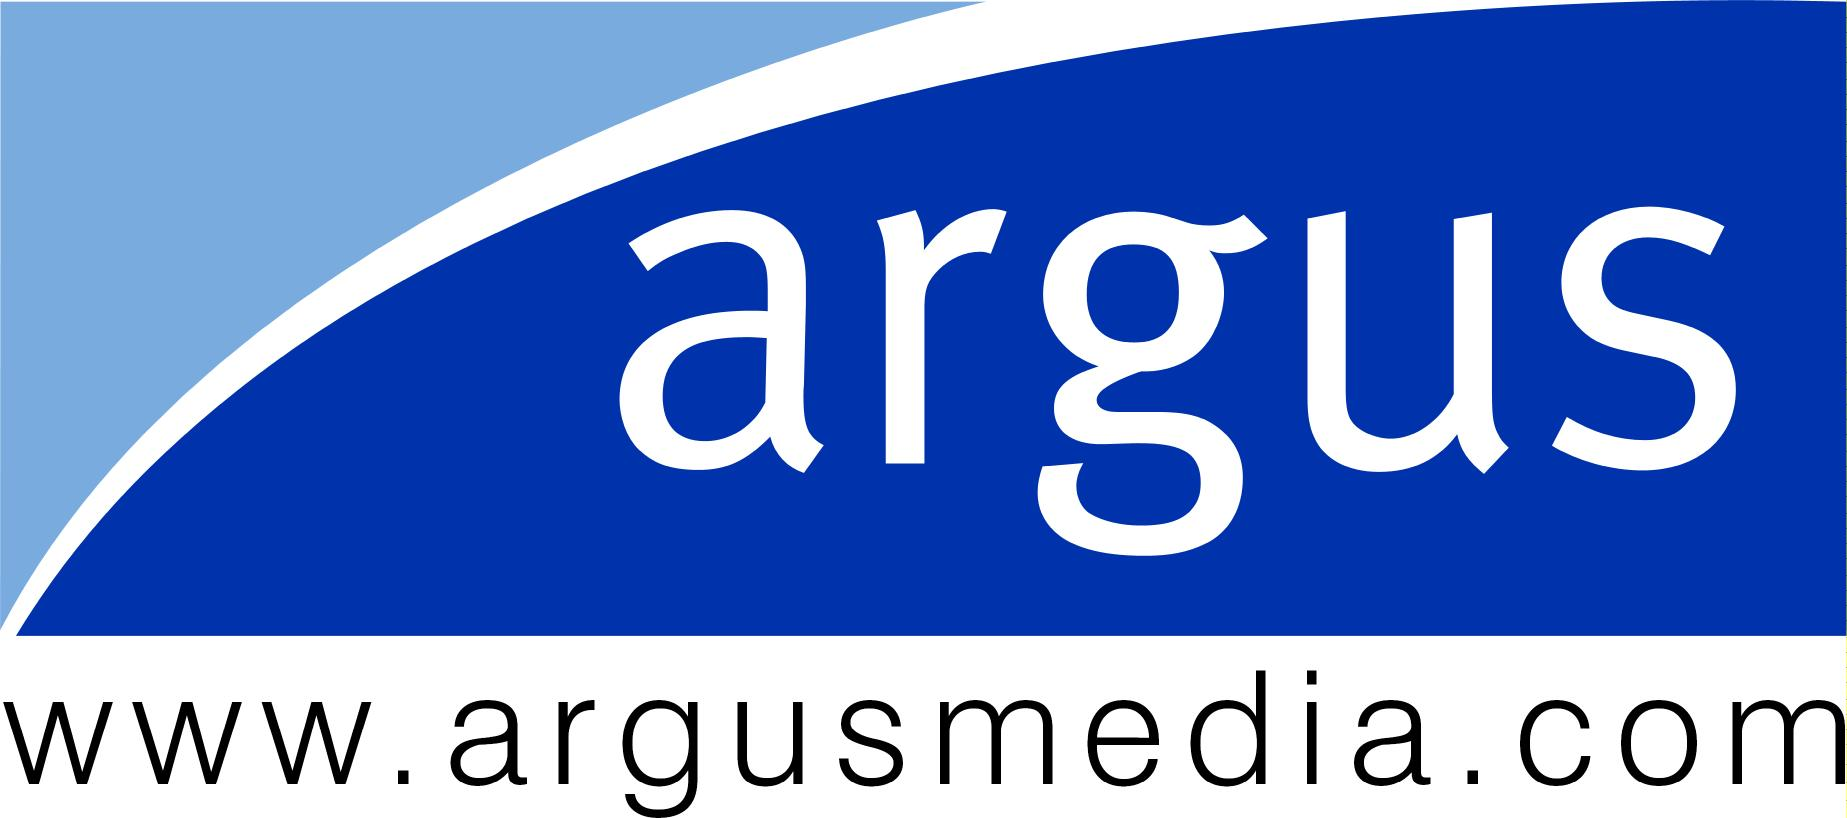 Argus Media is the world's